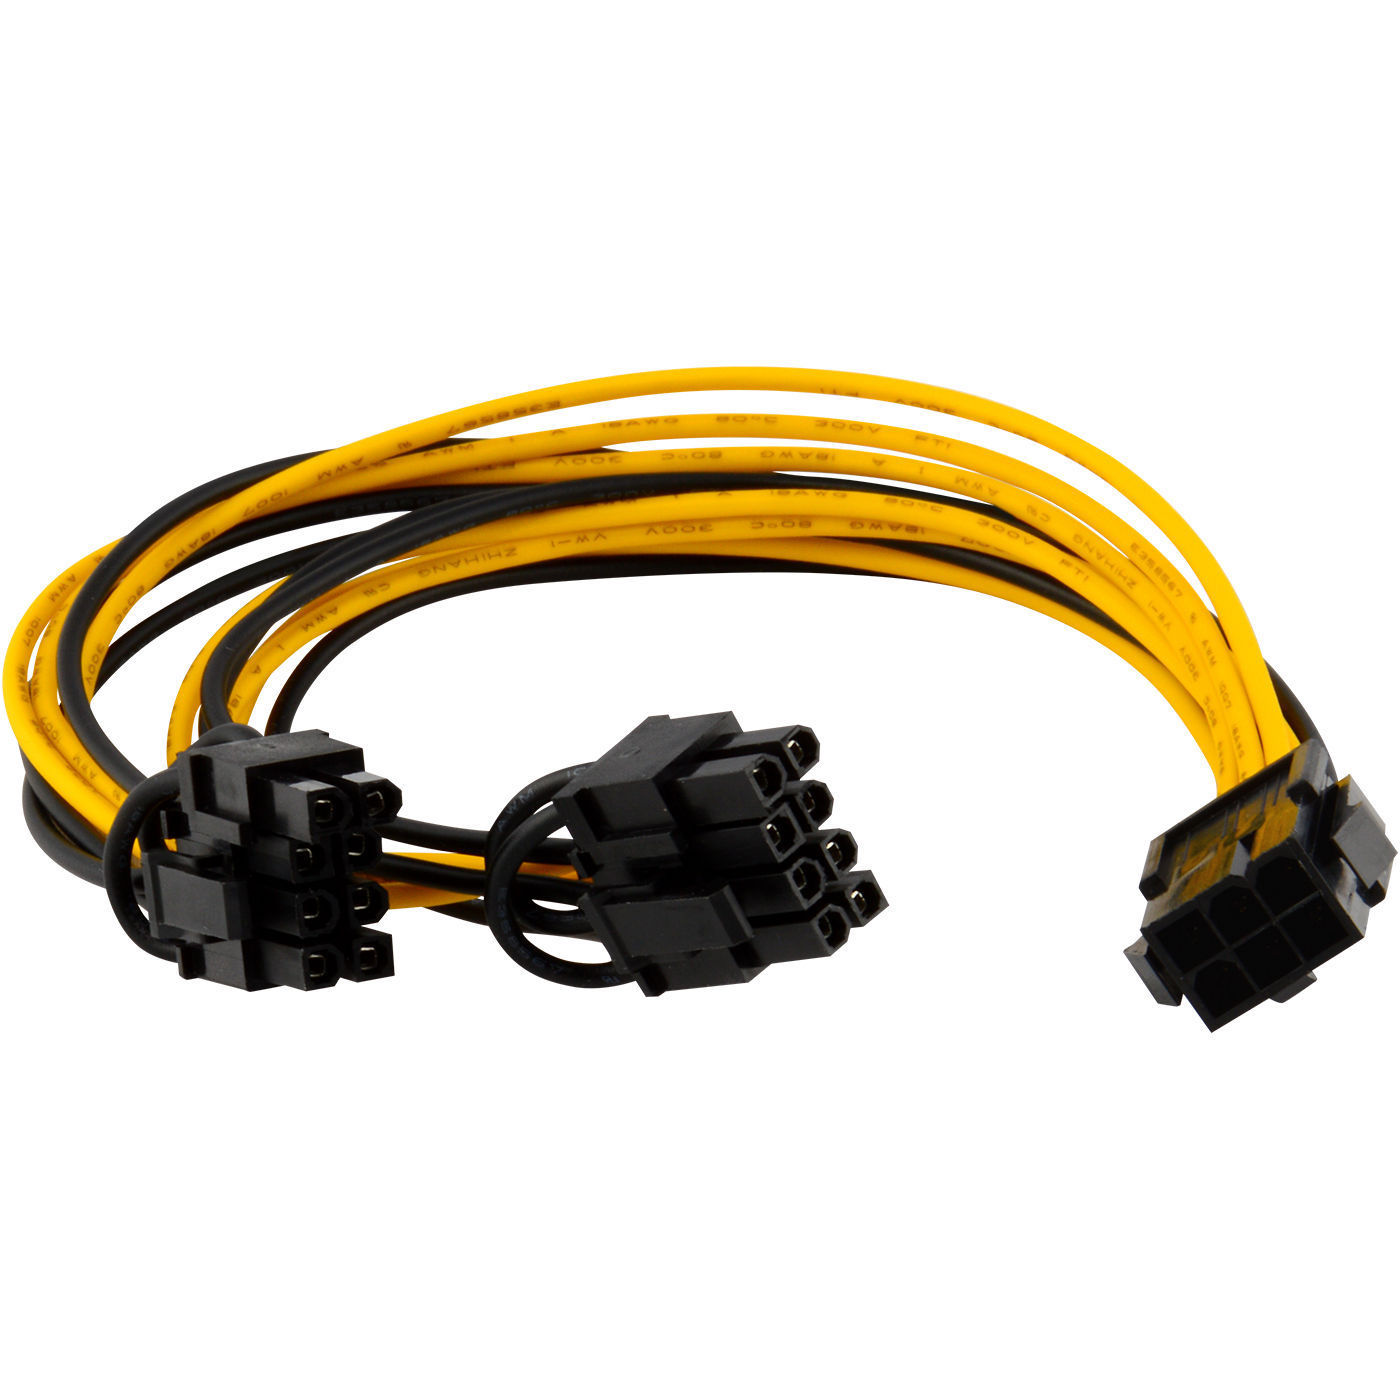 6 pin PCIe to dual 8(6+2)pin splitter cable 20 cm for powering e - Click Image to Close